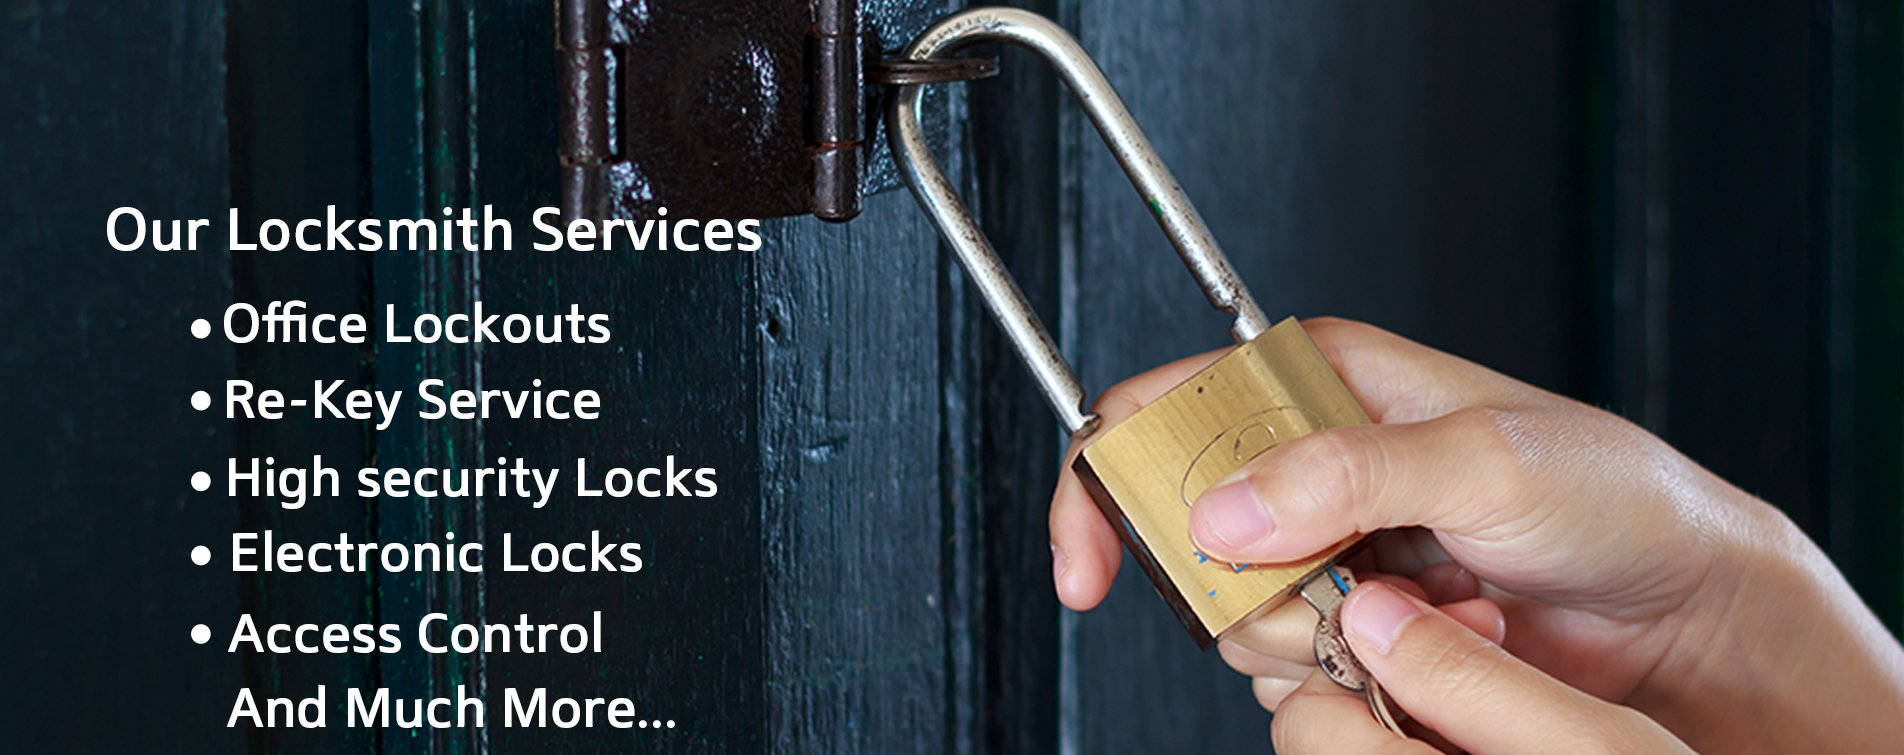 Levittown Locksmith Service, Levittown, PA 215-716-7633